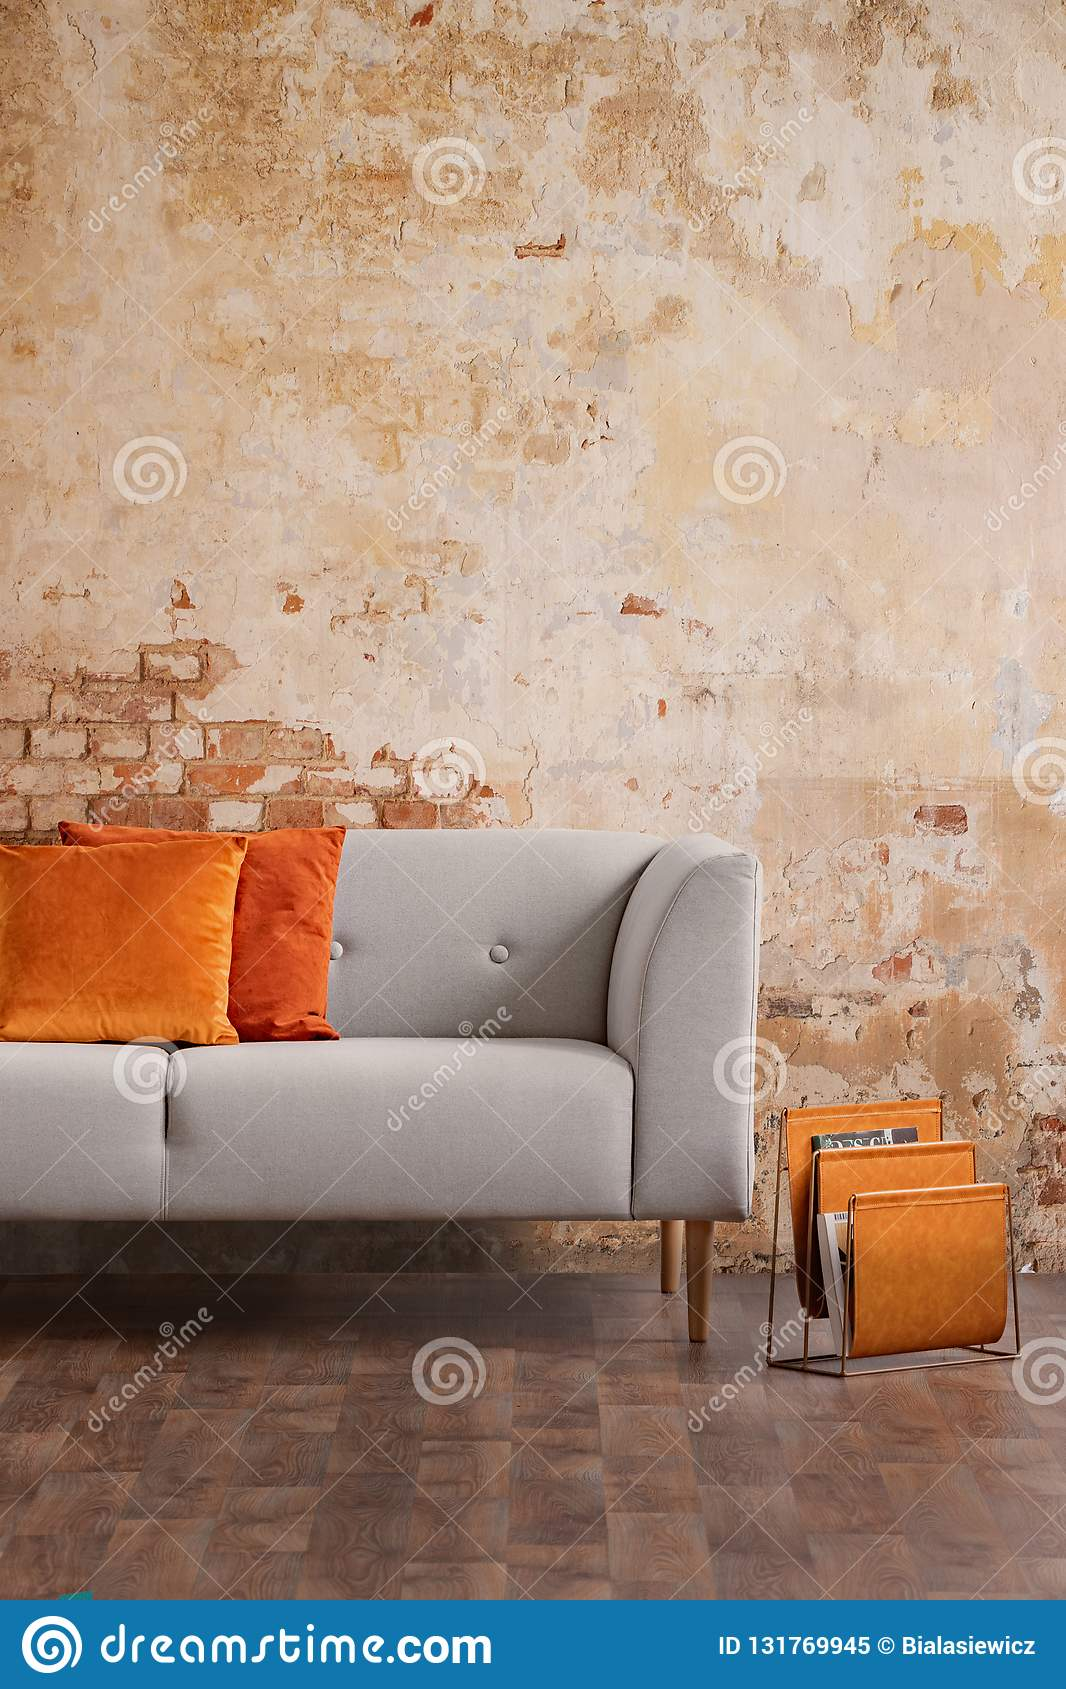 Grey sofa against red brick wall in modern living room interior. Real photo